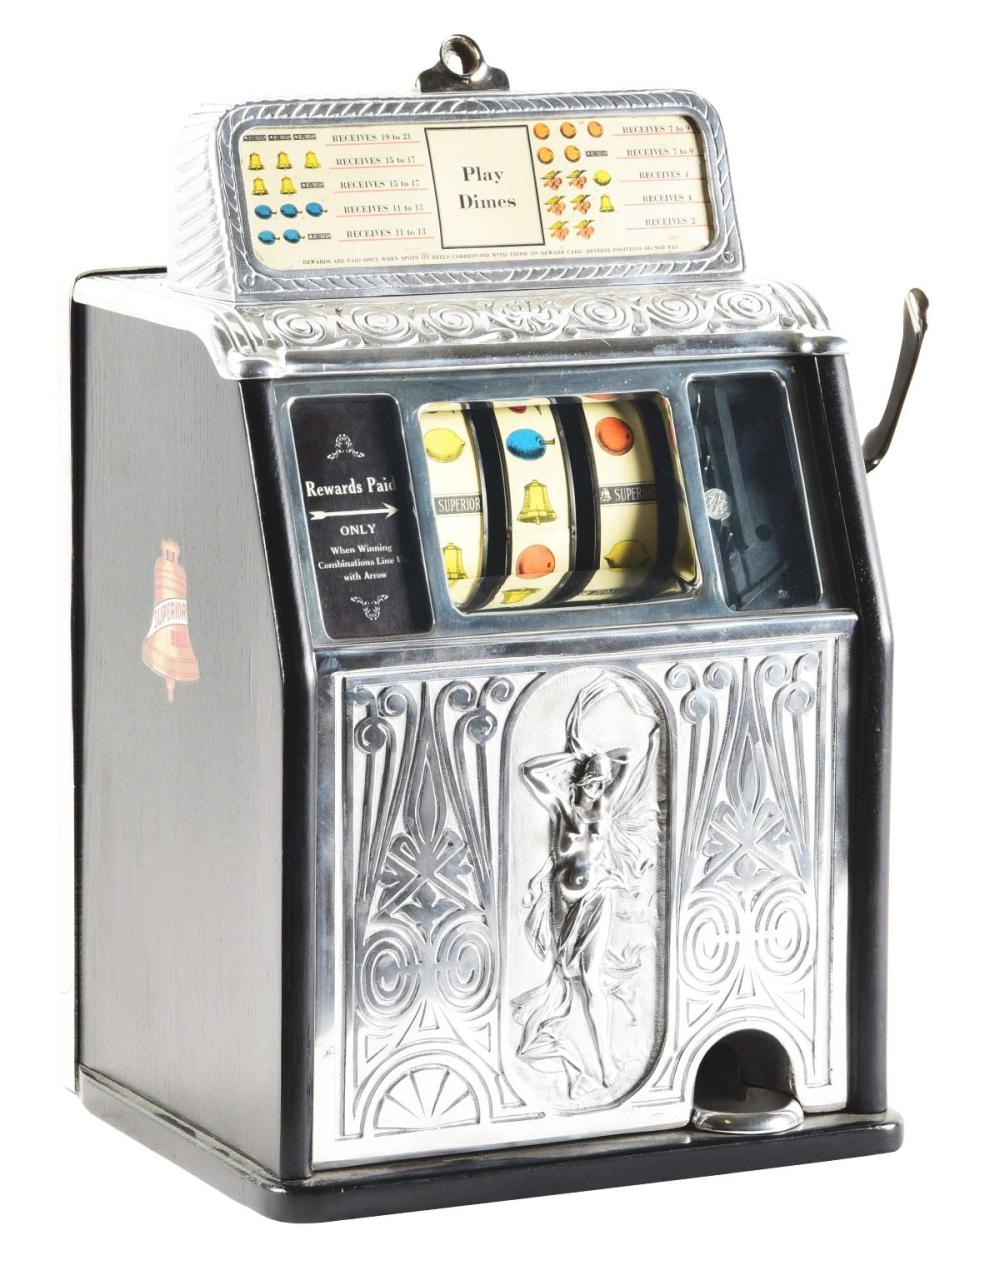 10¢ CAILLE NAKED LADY SUPERIOR SLOT MACHINE.